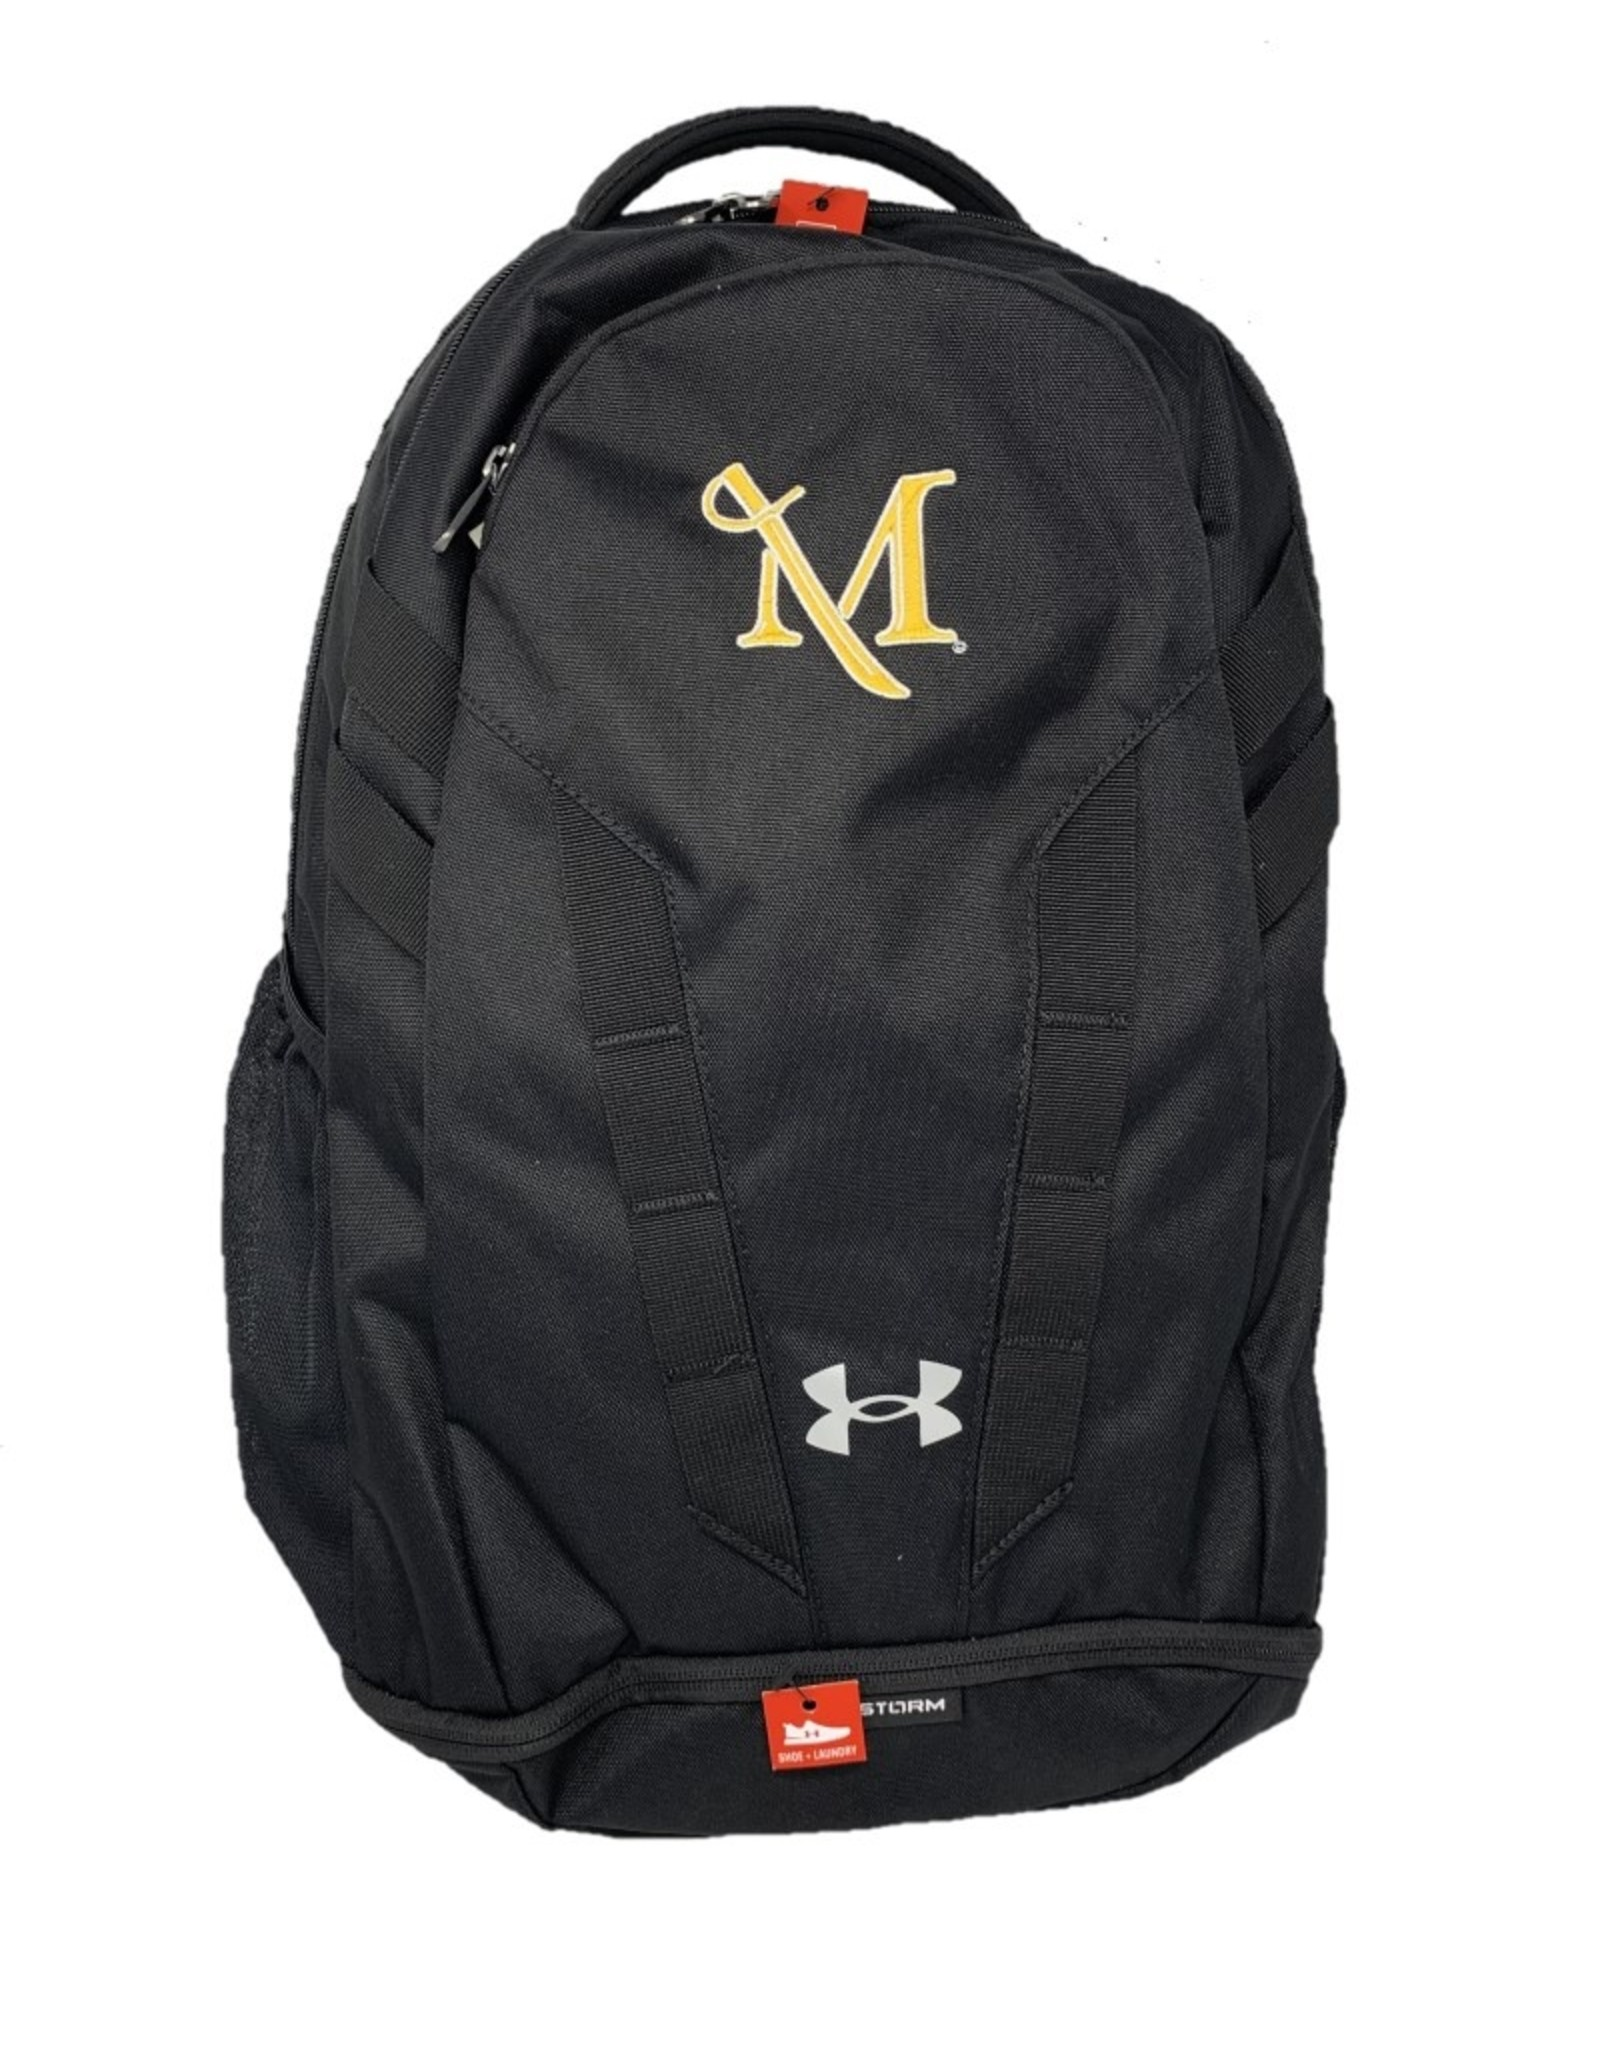 Under Armour Under Armour 5.0 Hustle Backpack Black